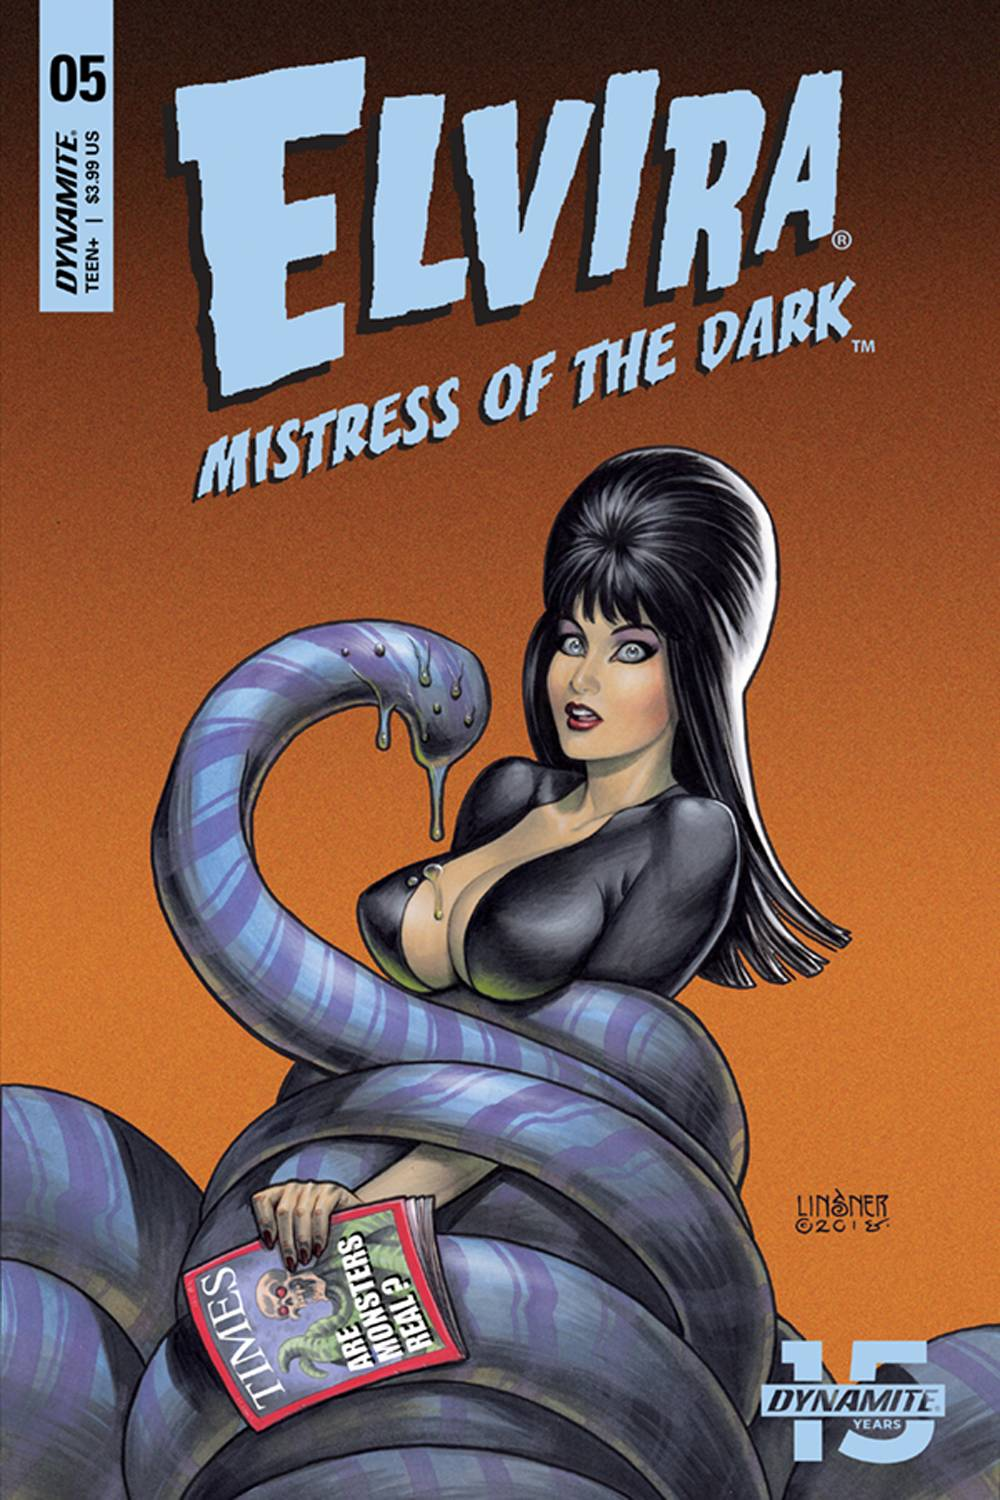 ELVIRA MISTRESS OF DARK 5 CVR A LINSNER.jpg